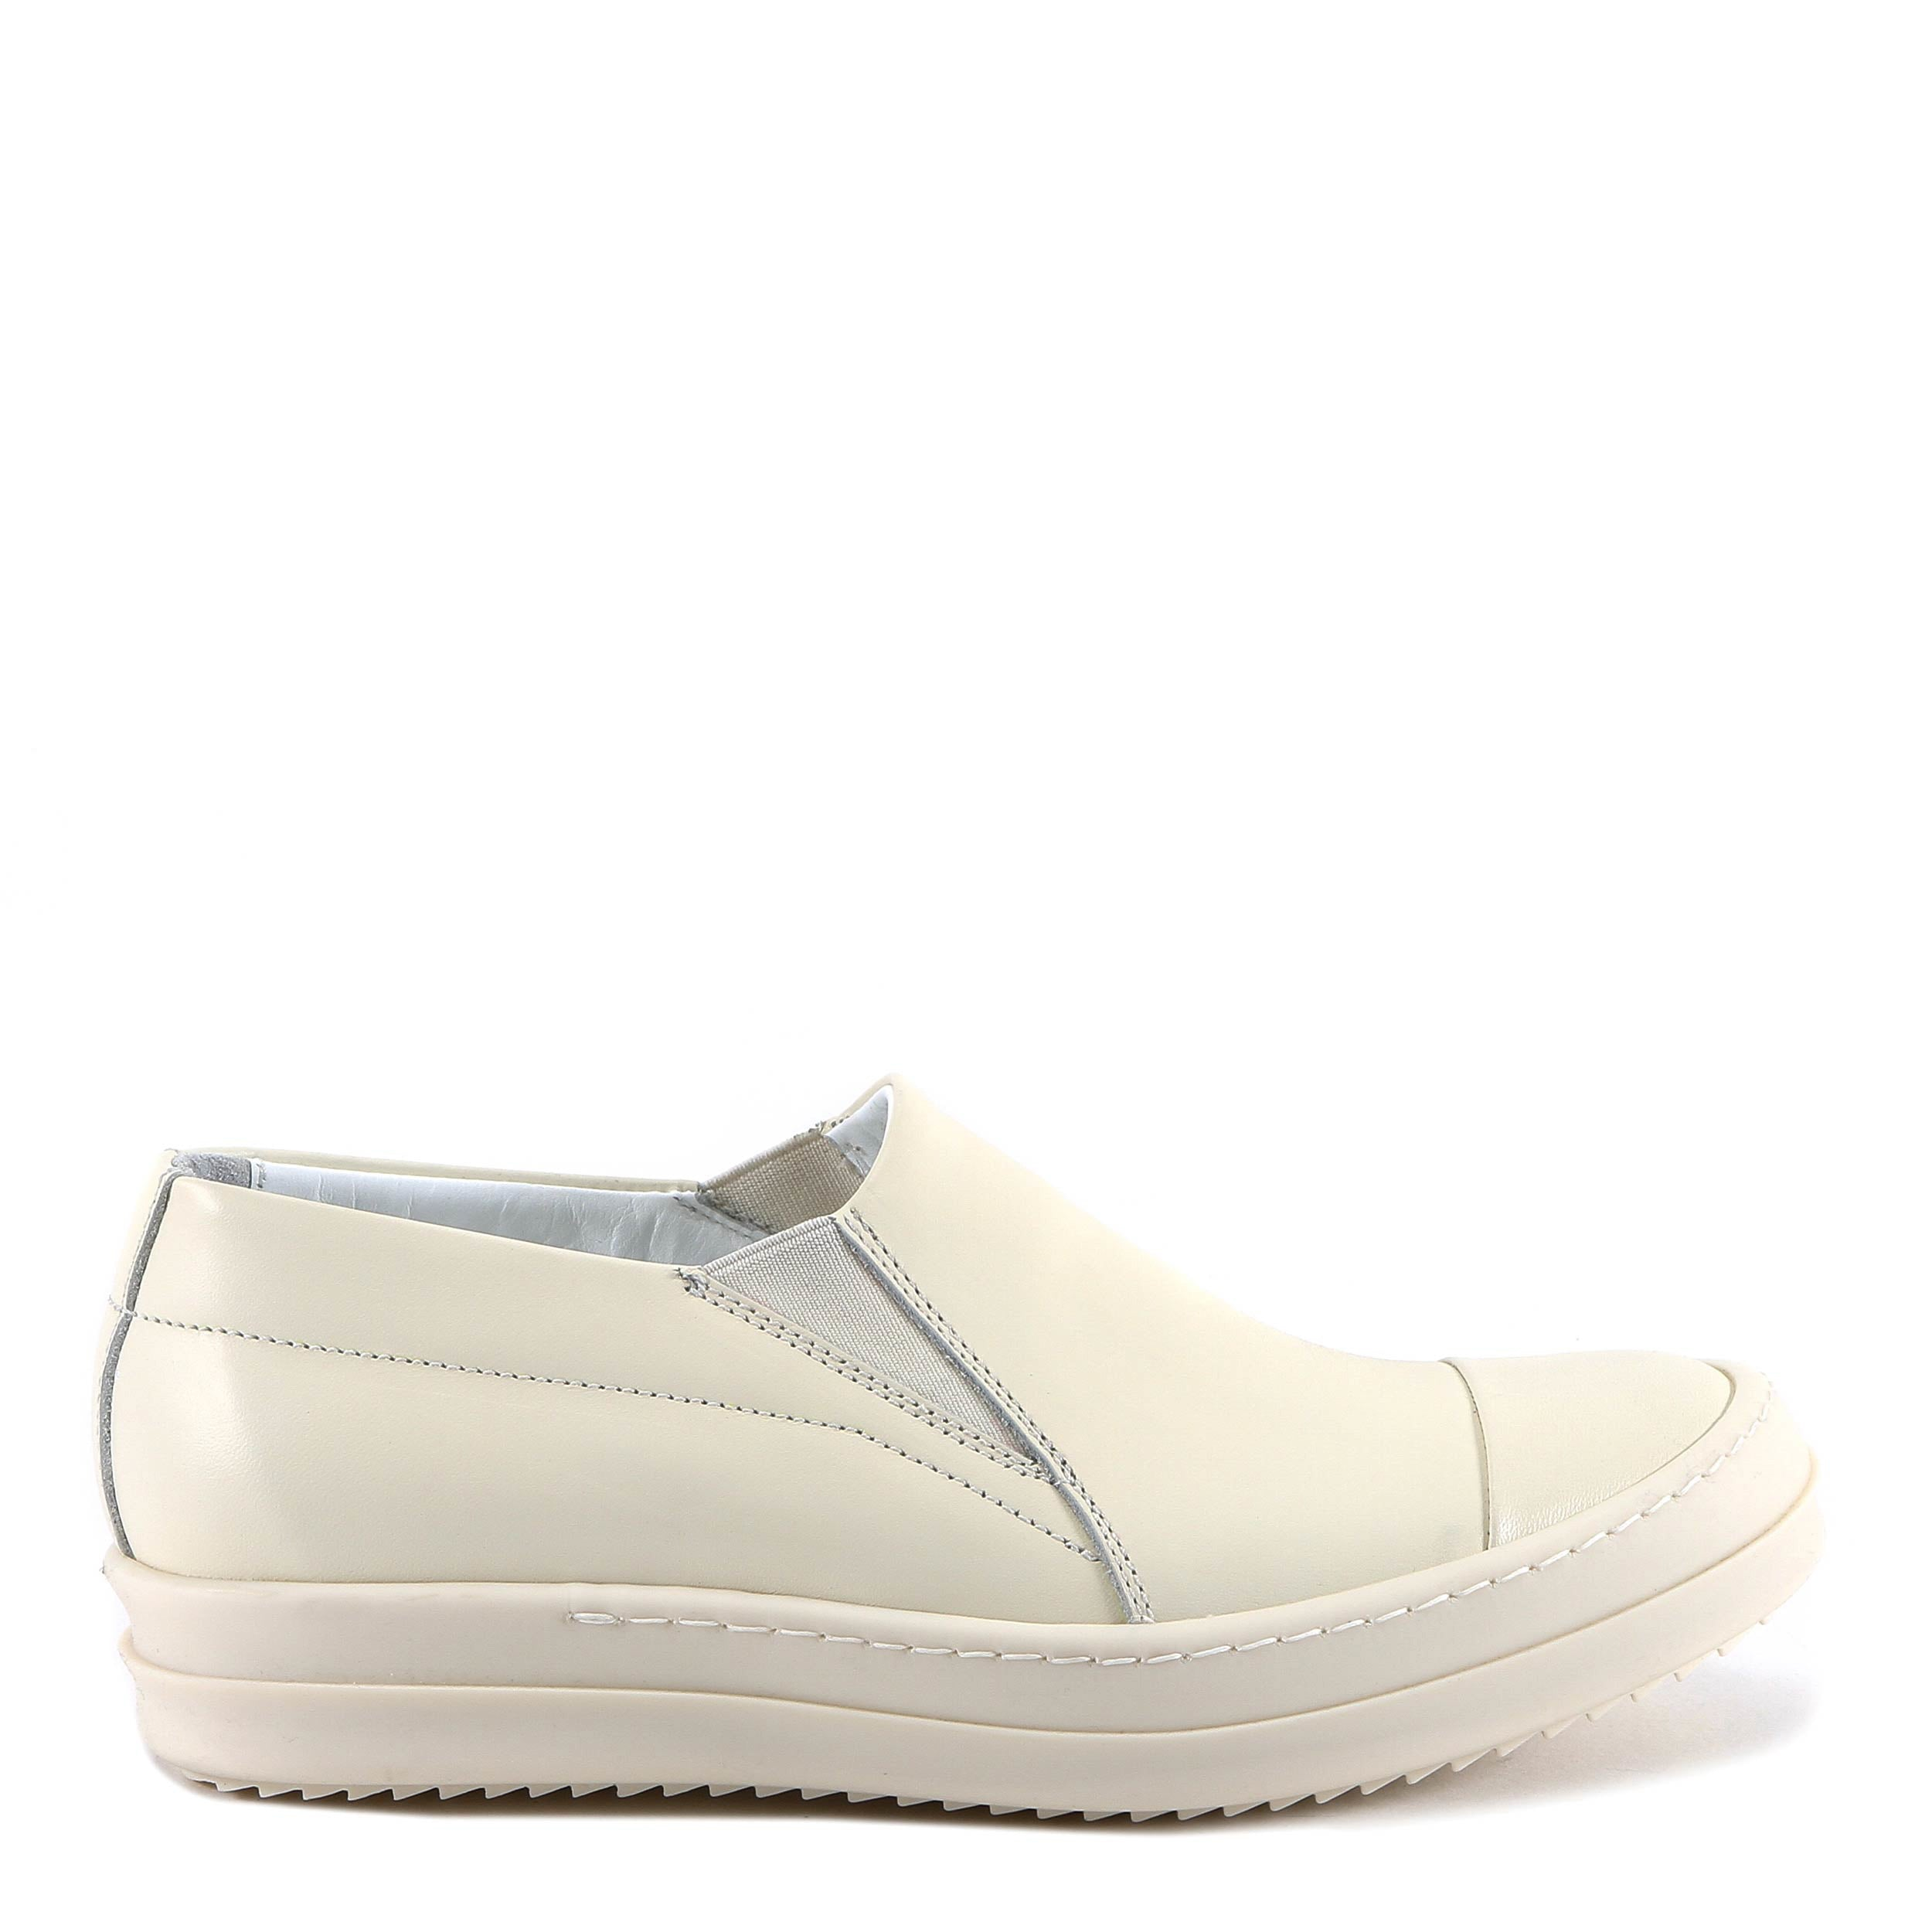 RICK OWENS SLIP ON SNEAKERS